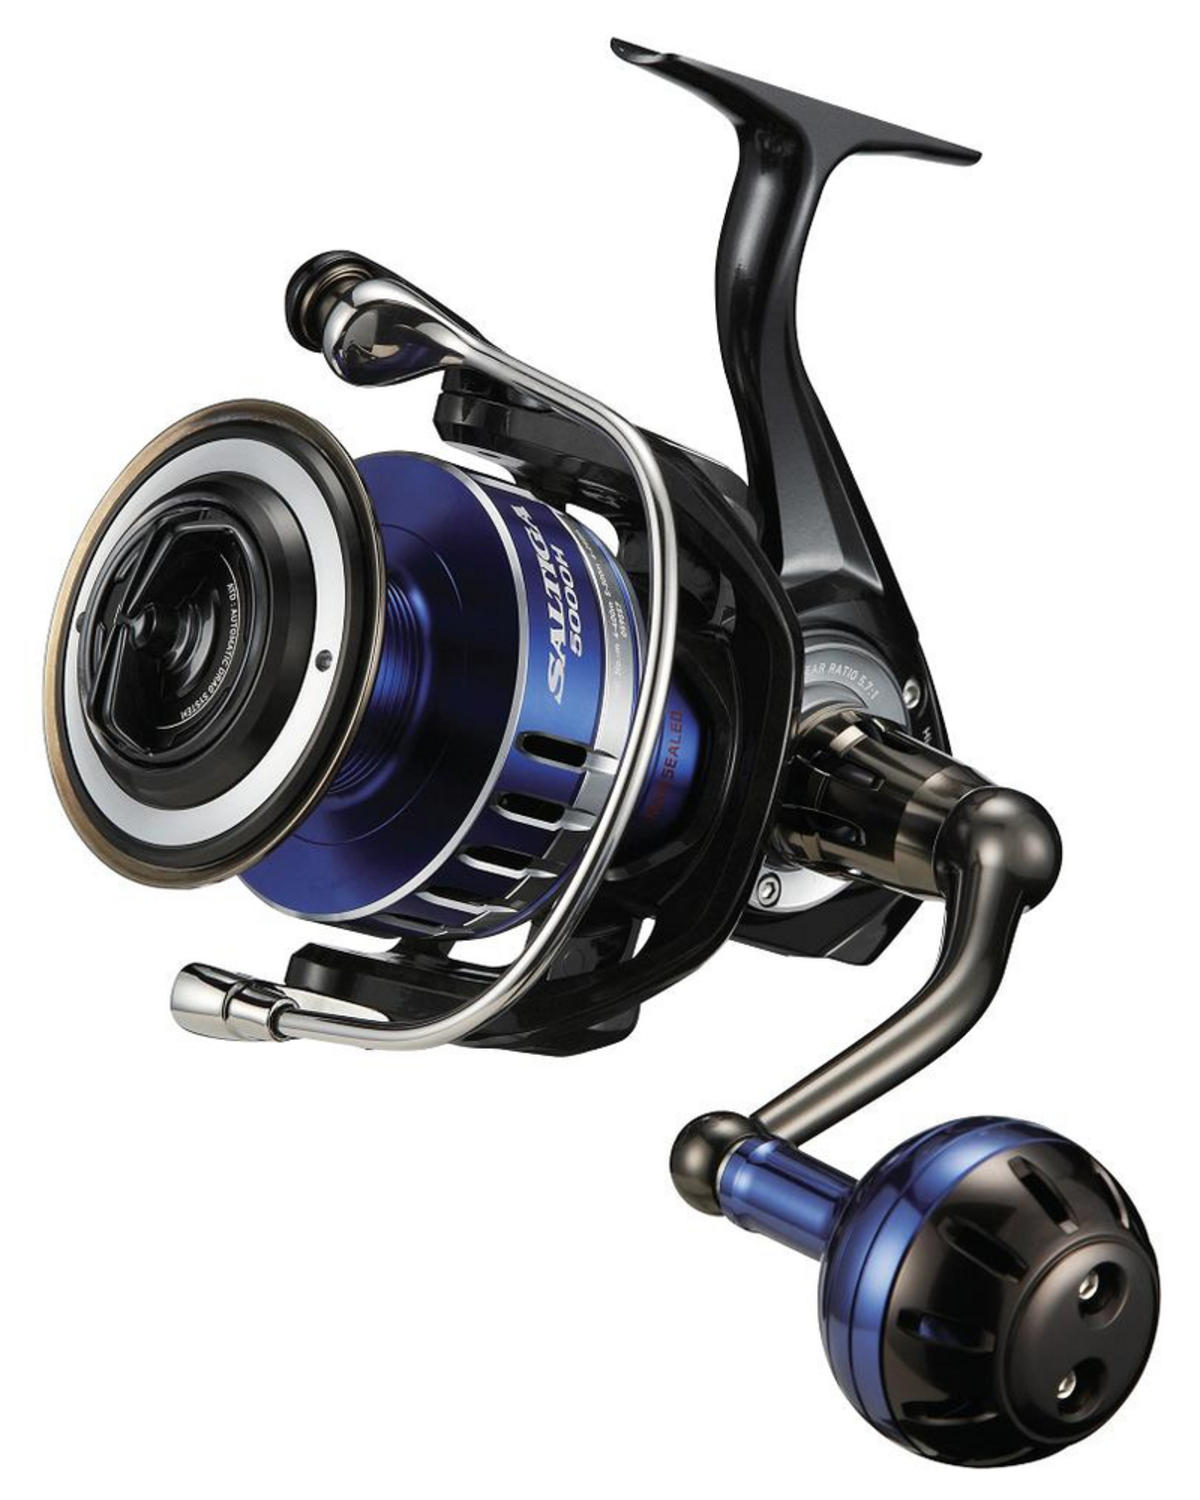 EX DISPLAY DAIWA 15 SALTIGA 5000H MAG SEALED FIXED SPOOL FISHING SPINNING REEL